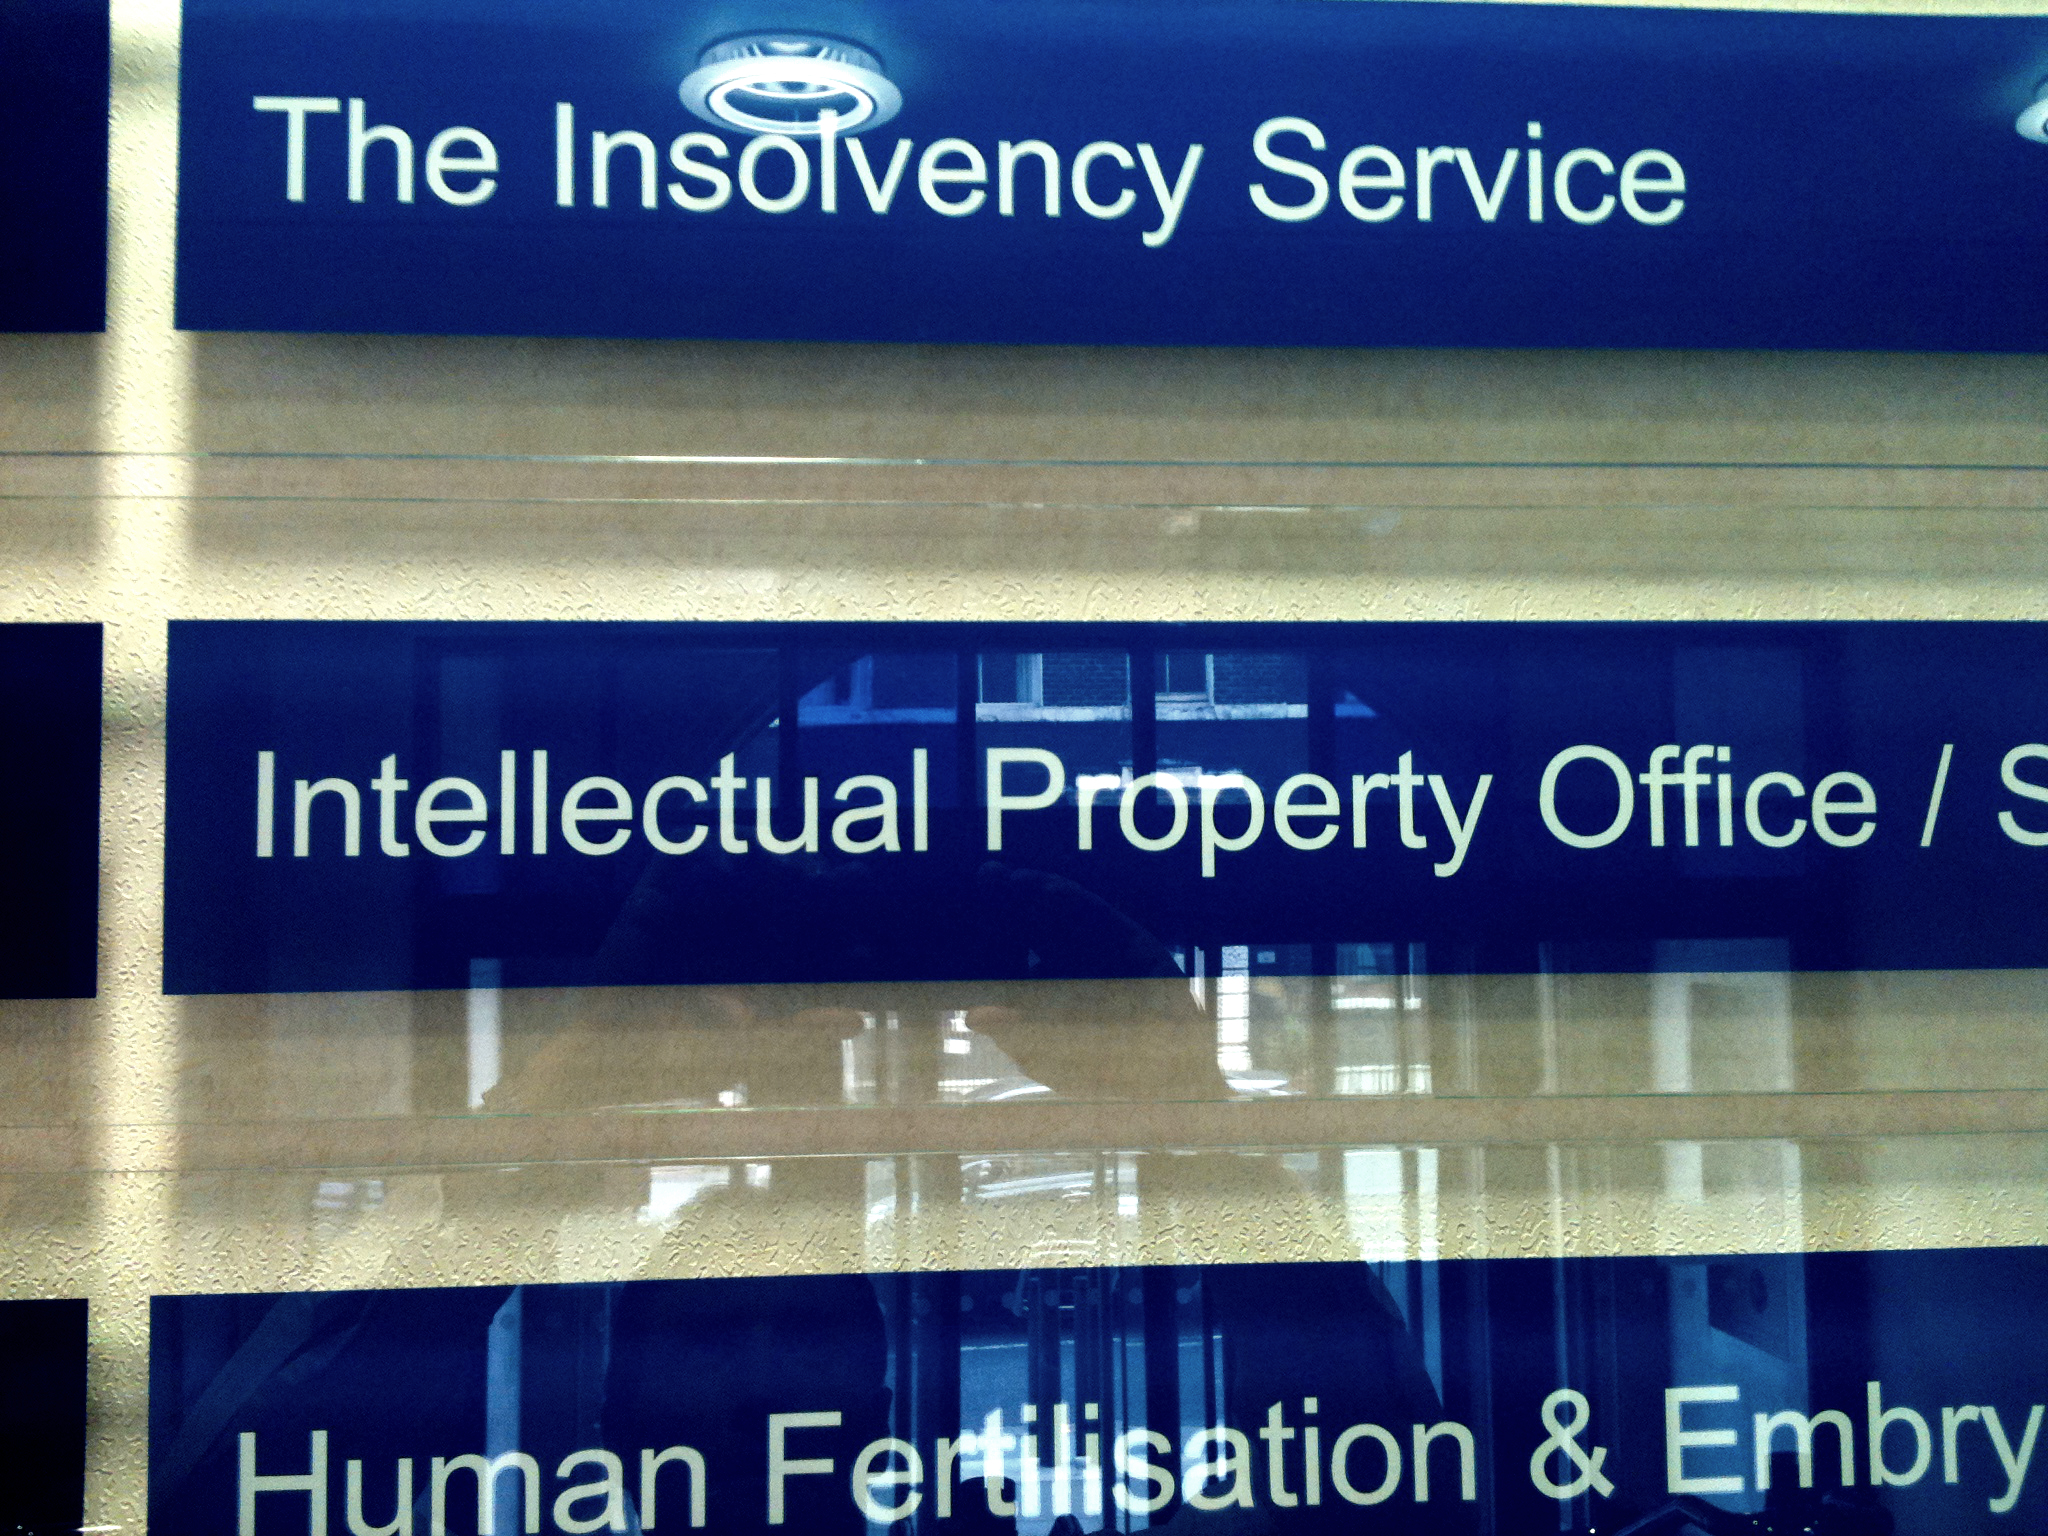 Illuminated Fascia IPO Intellectula Property Office sign by E Signs ® E Signs is the registered trade mark of Lewis Critchley www.e-signs.co.uk